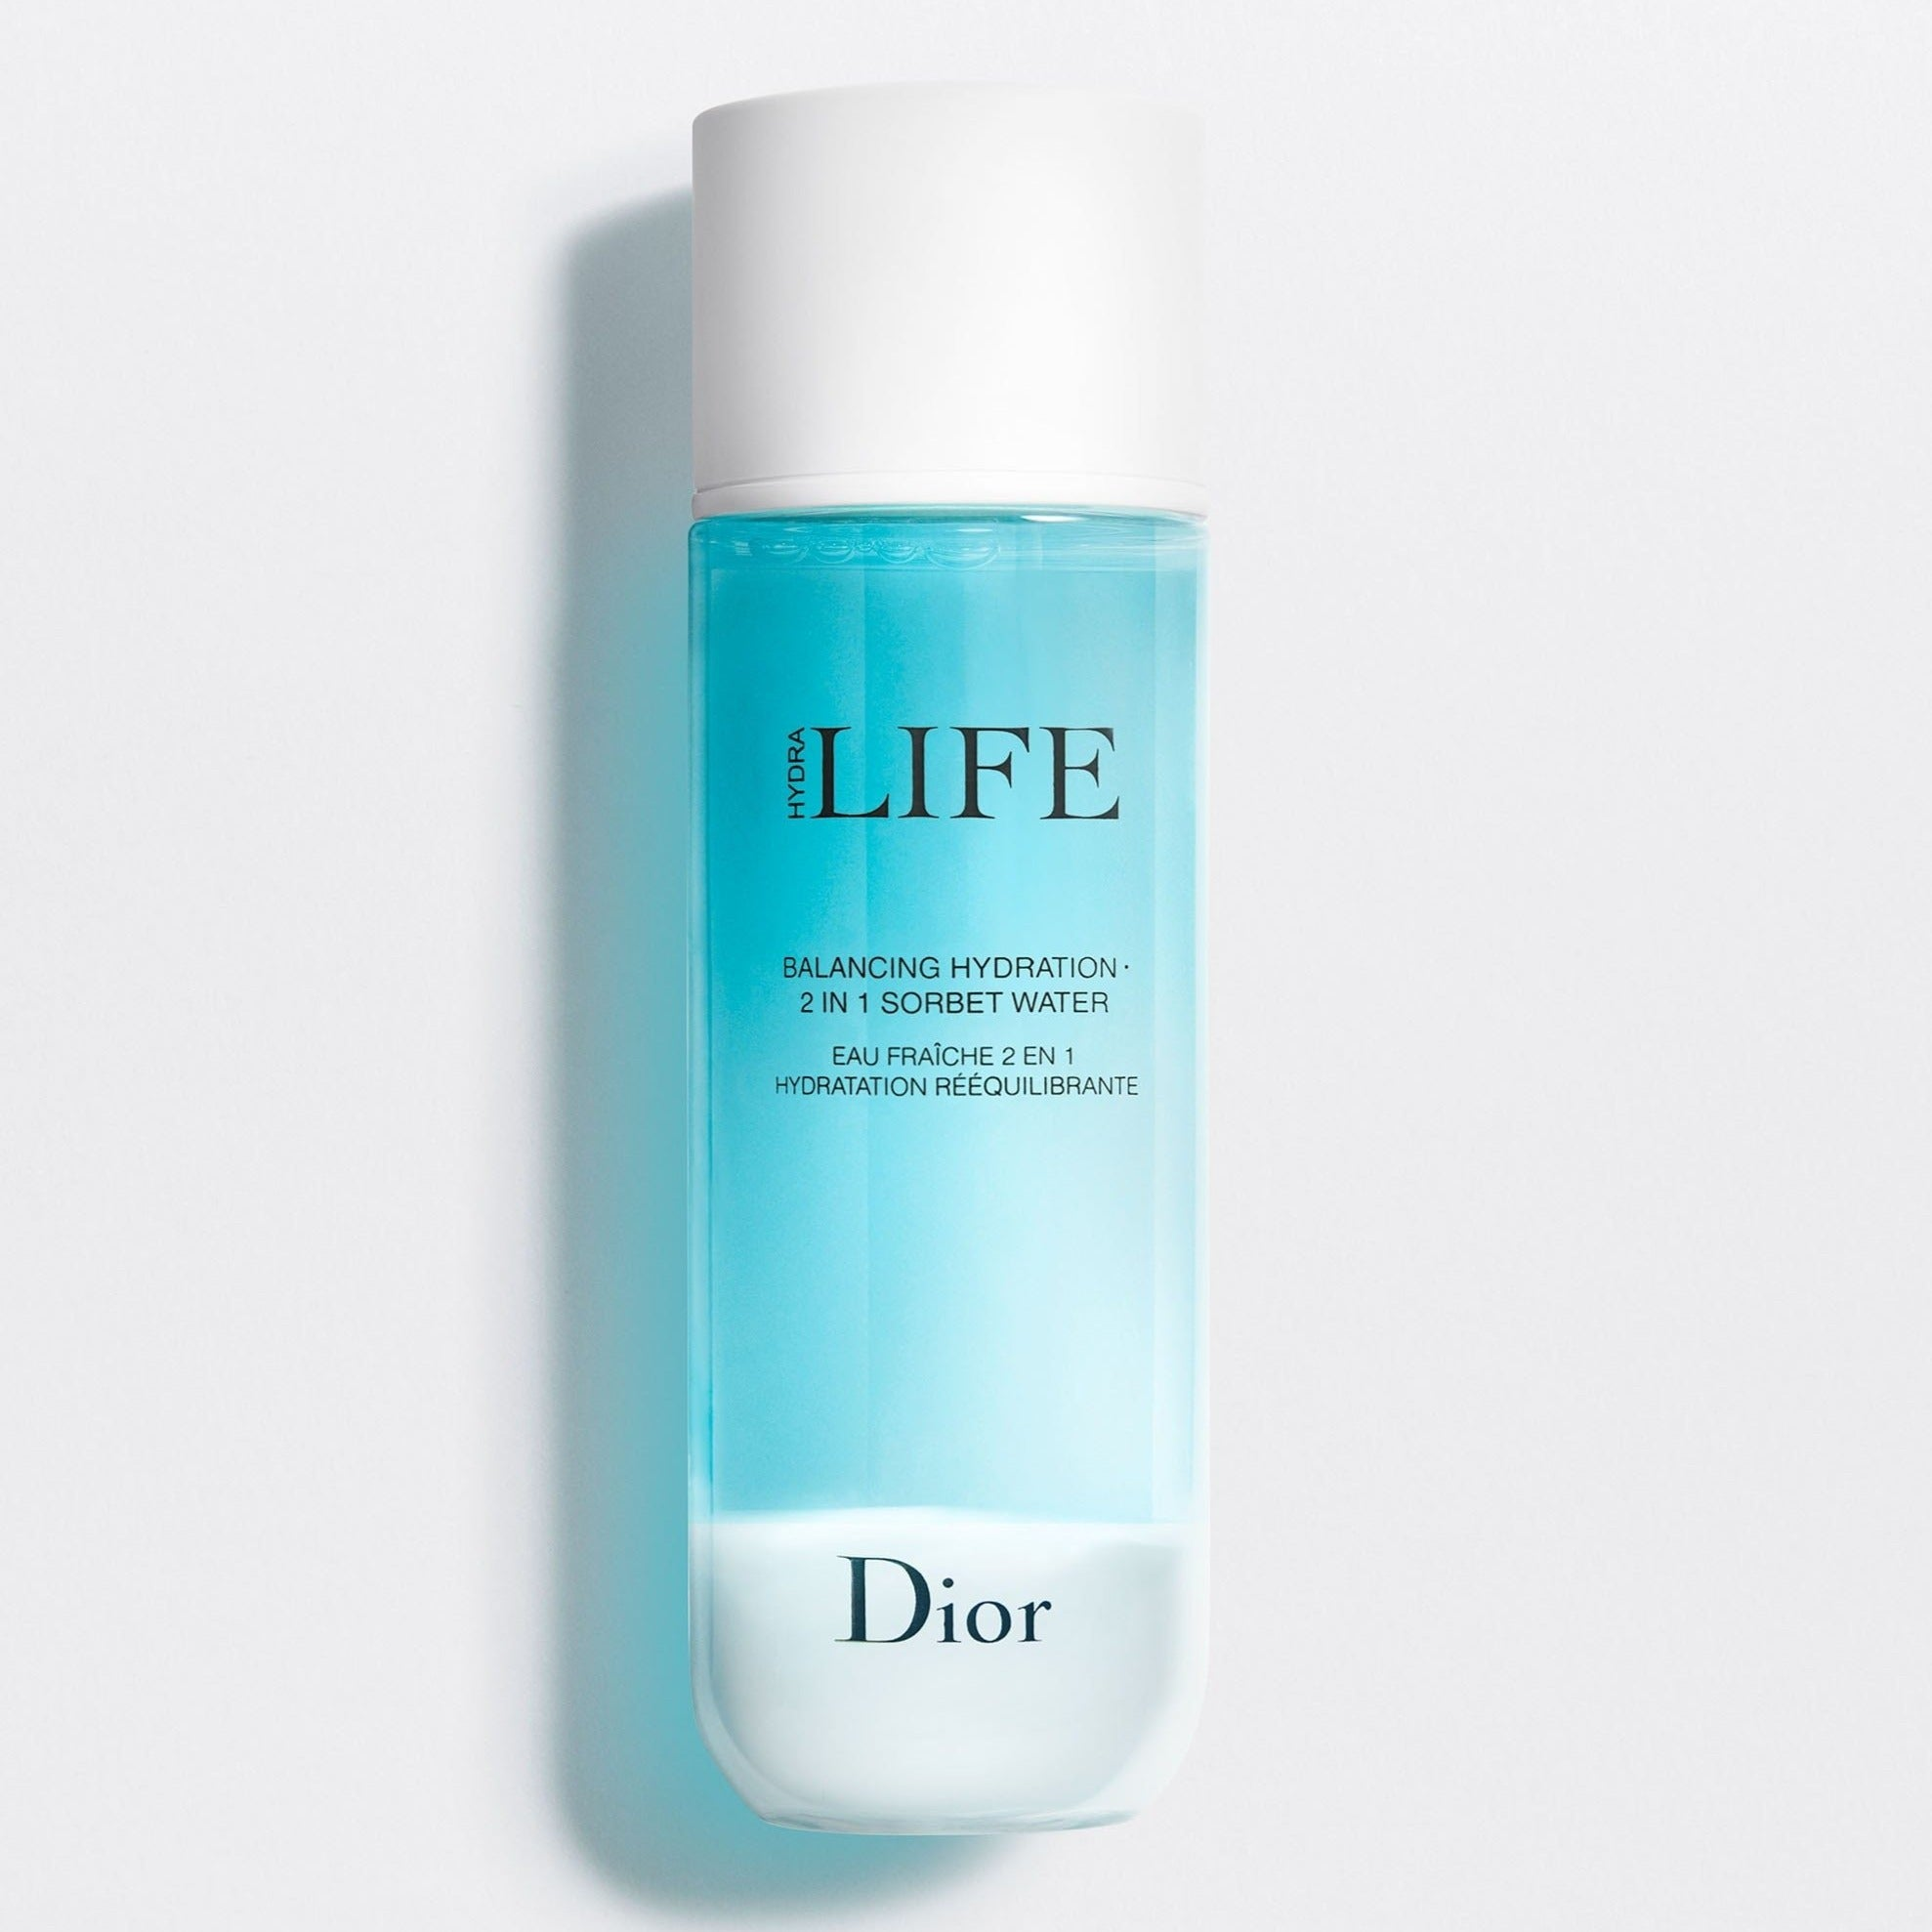 DIOR HYDRA LIFE | Deep hydration - sorbet water essence